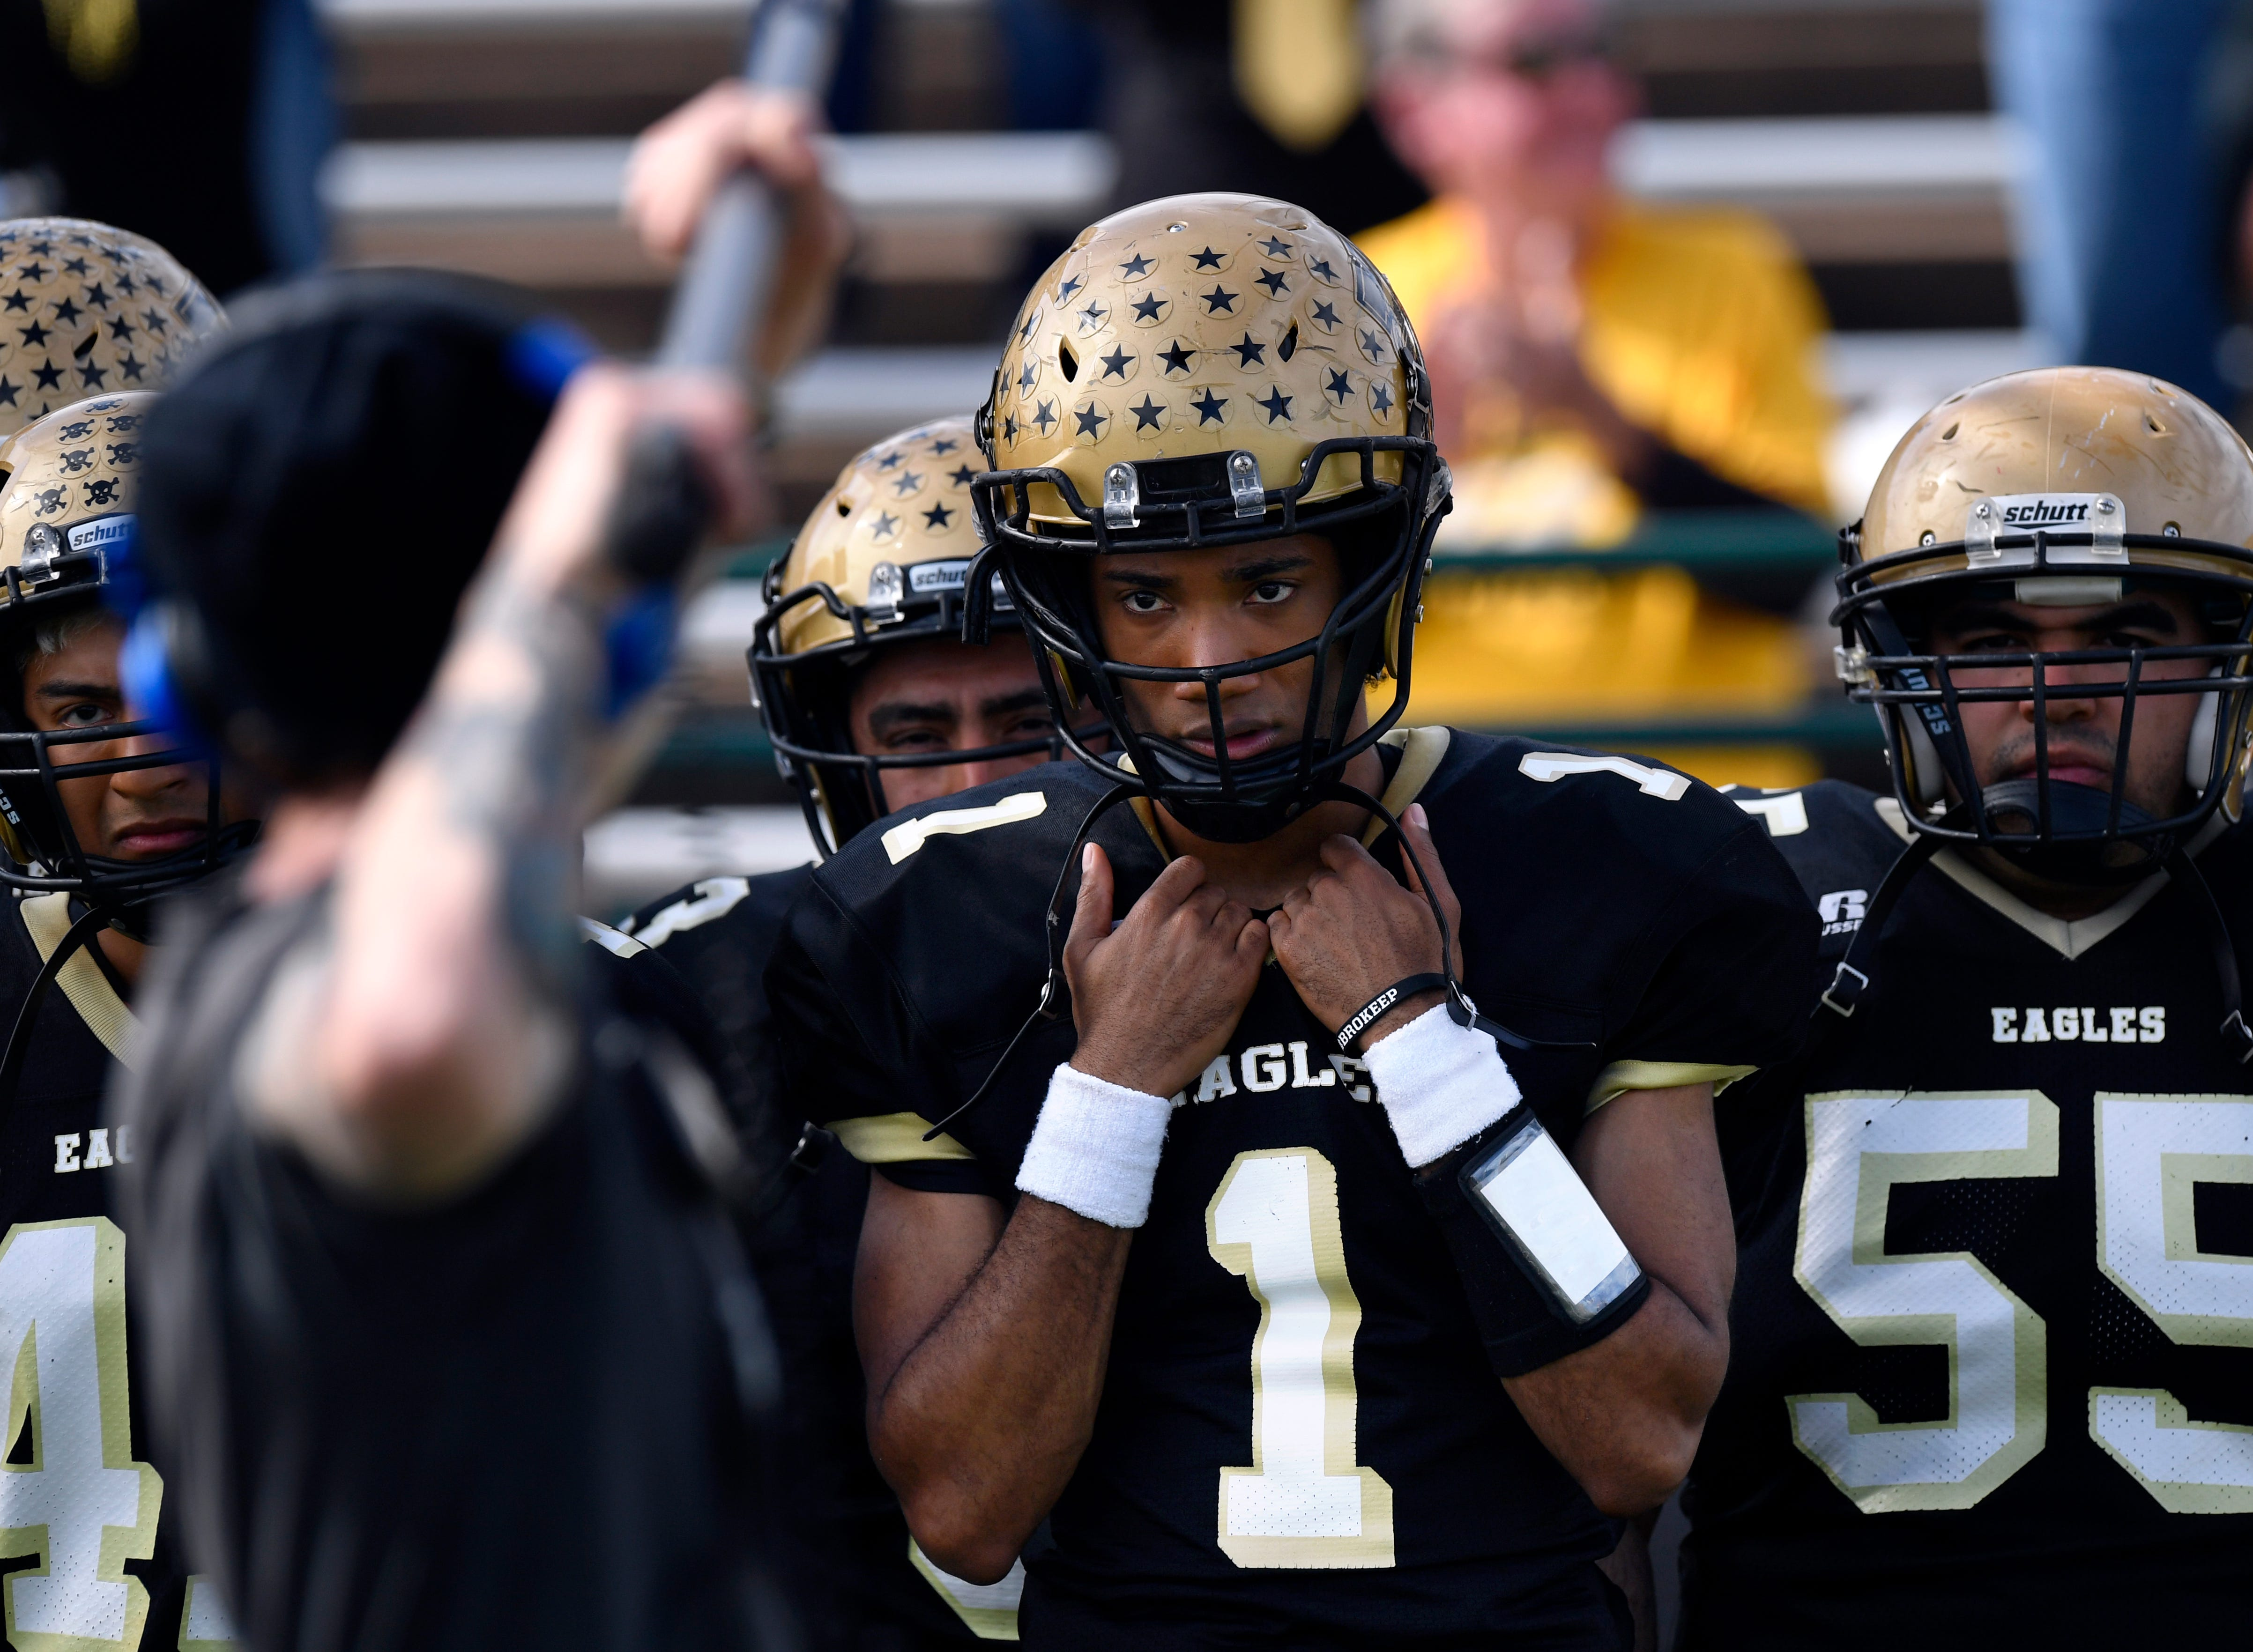 """Carter Redwood, playing Ronnell Sims, performs as an audio technician holds a microphone over his head during filming Monday, Feb. 4, 2019, of """"Brother's Keeper"""" at Shotwell Stadium. The film recreates the Abilene High School Eagles 2009 championship football season."""